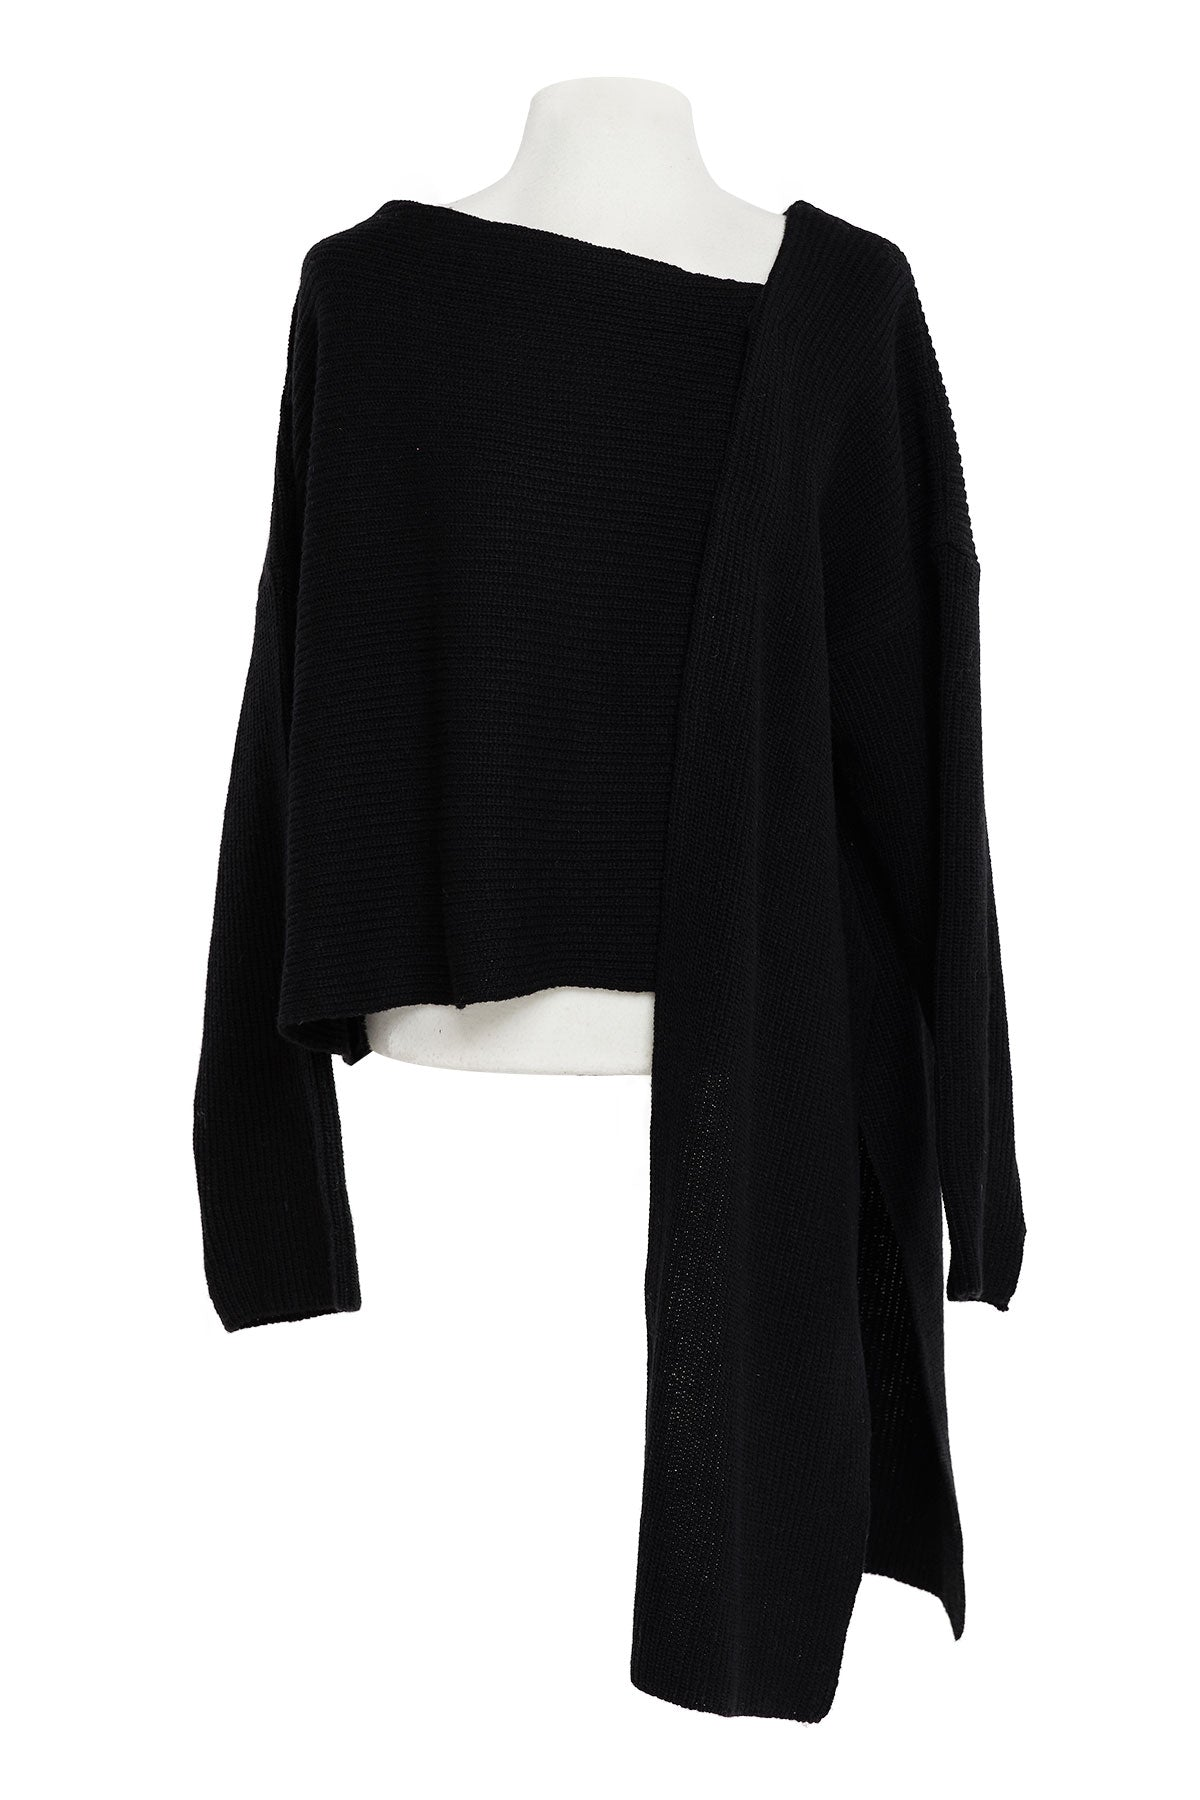 Juliana Asymmetric Knit Cardigan-2 Colors (Pre-Order)